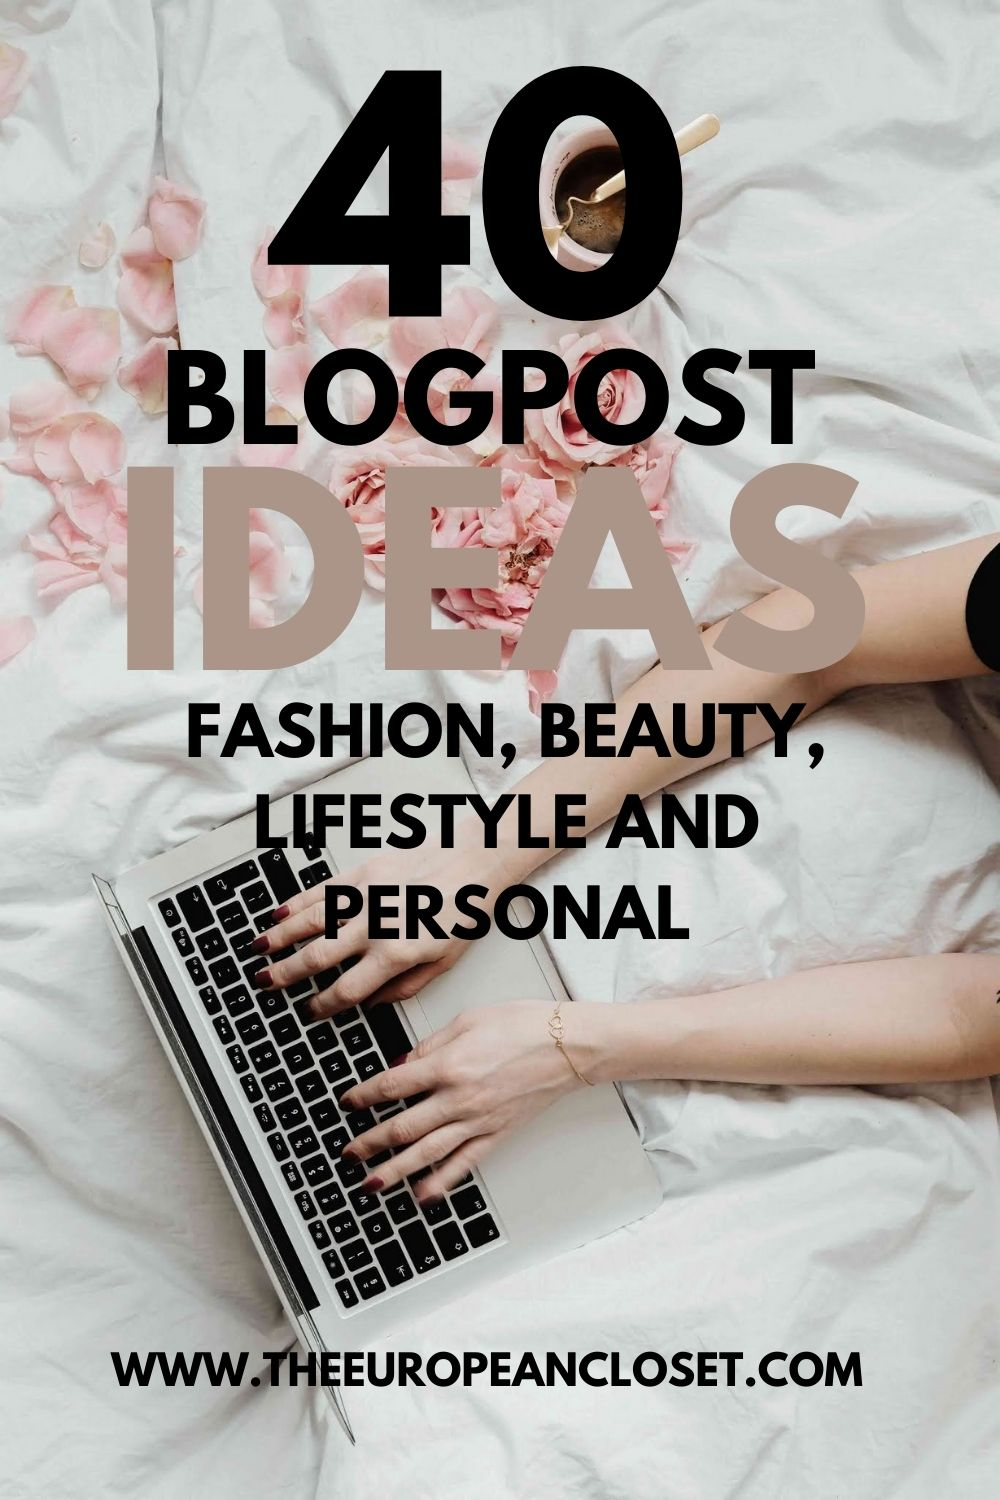 Don't know what to write about on your blog? Ran out of ideas? Here are 40 blogpost ideas you can write right now.